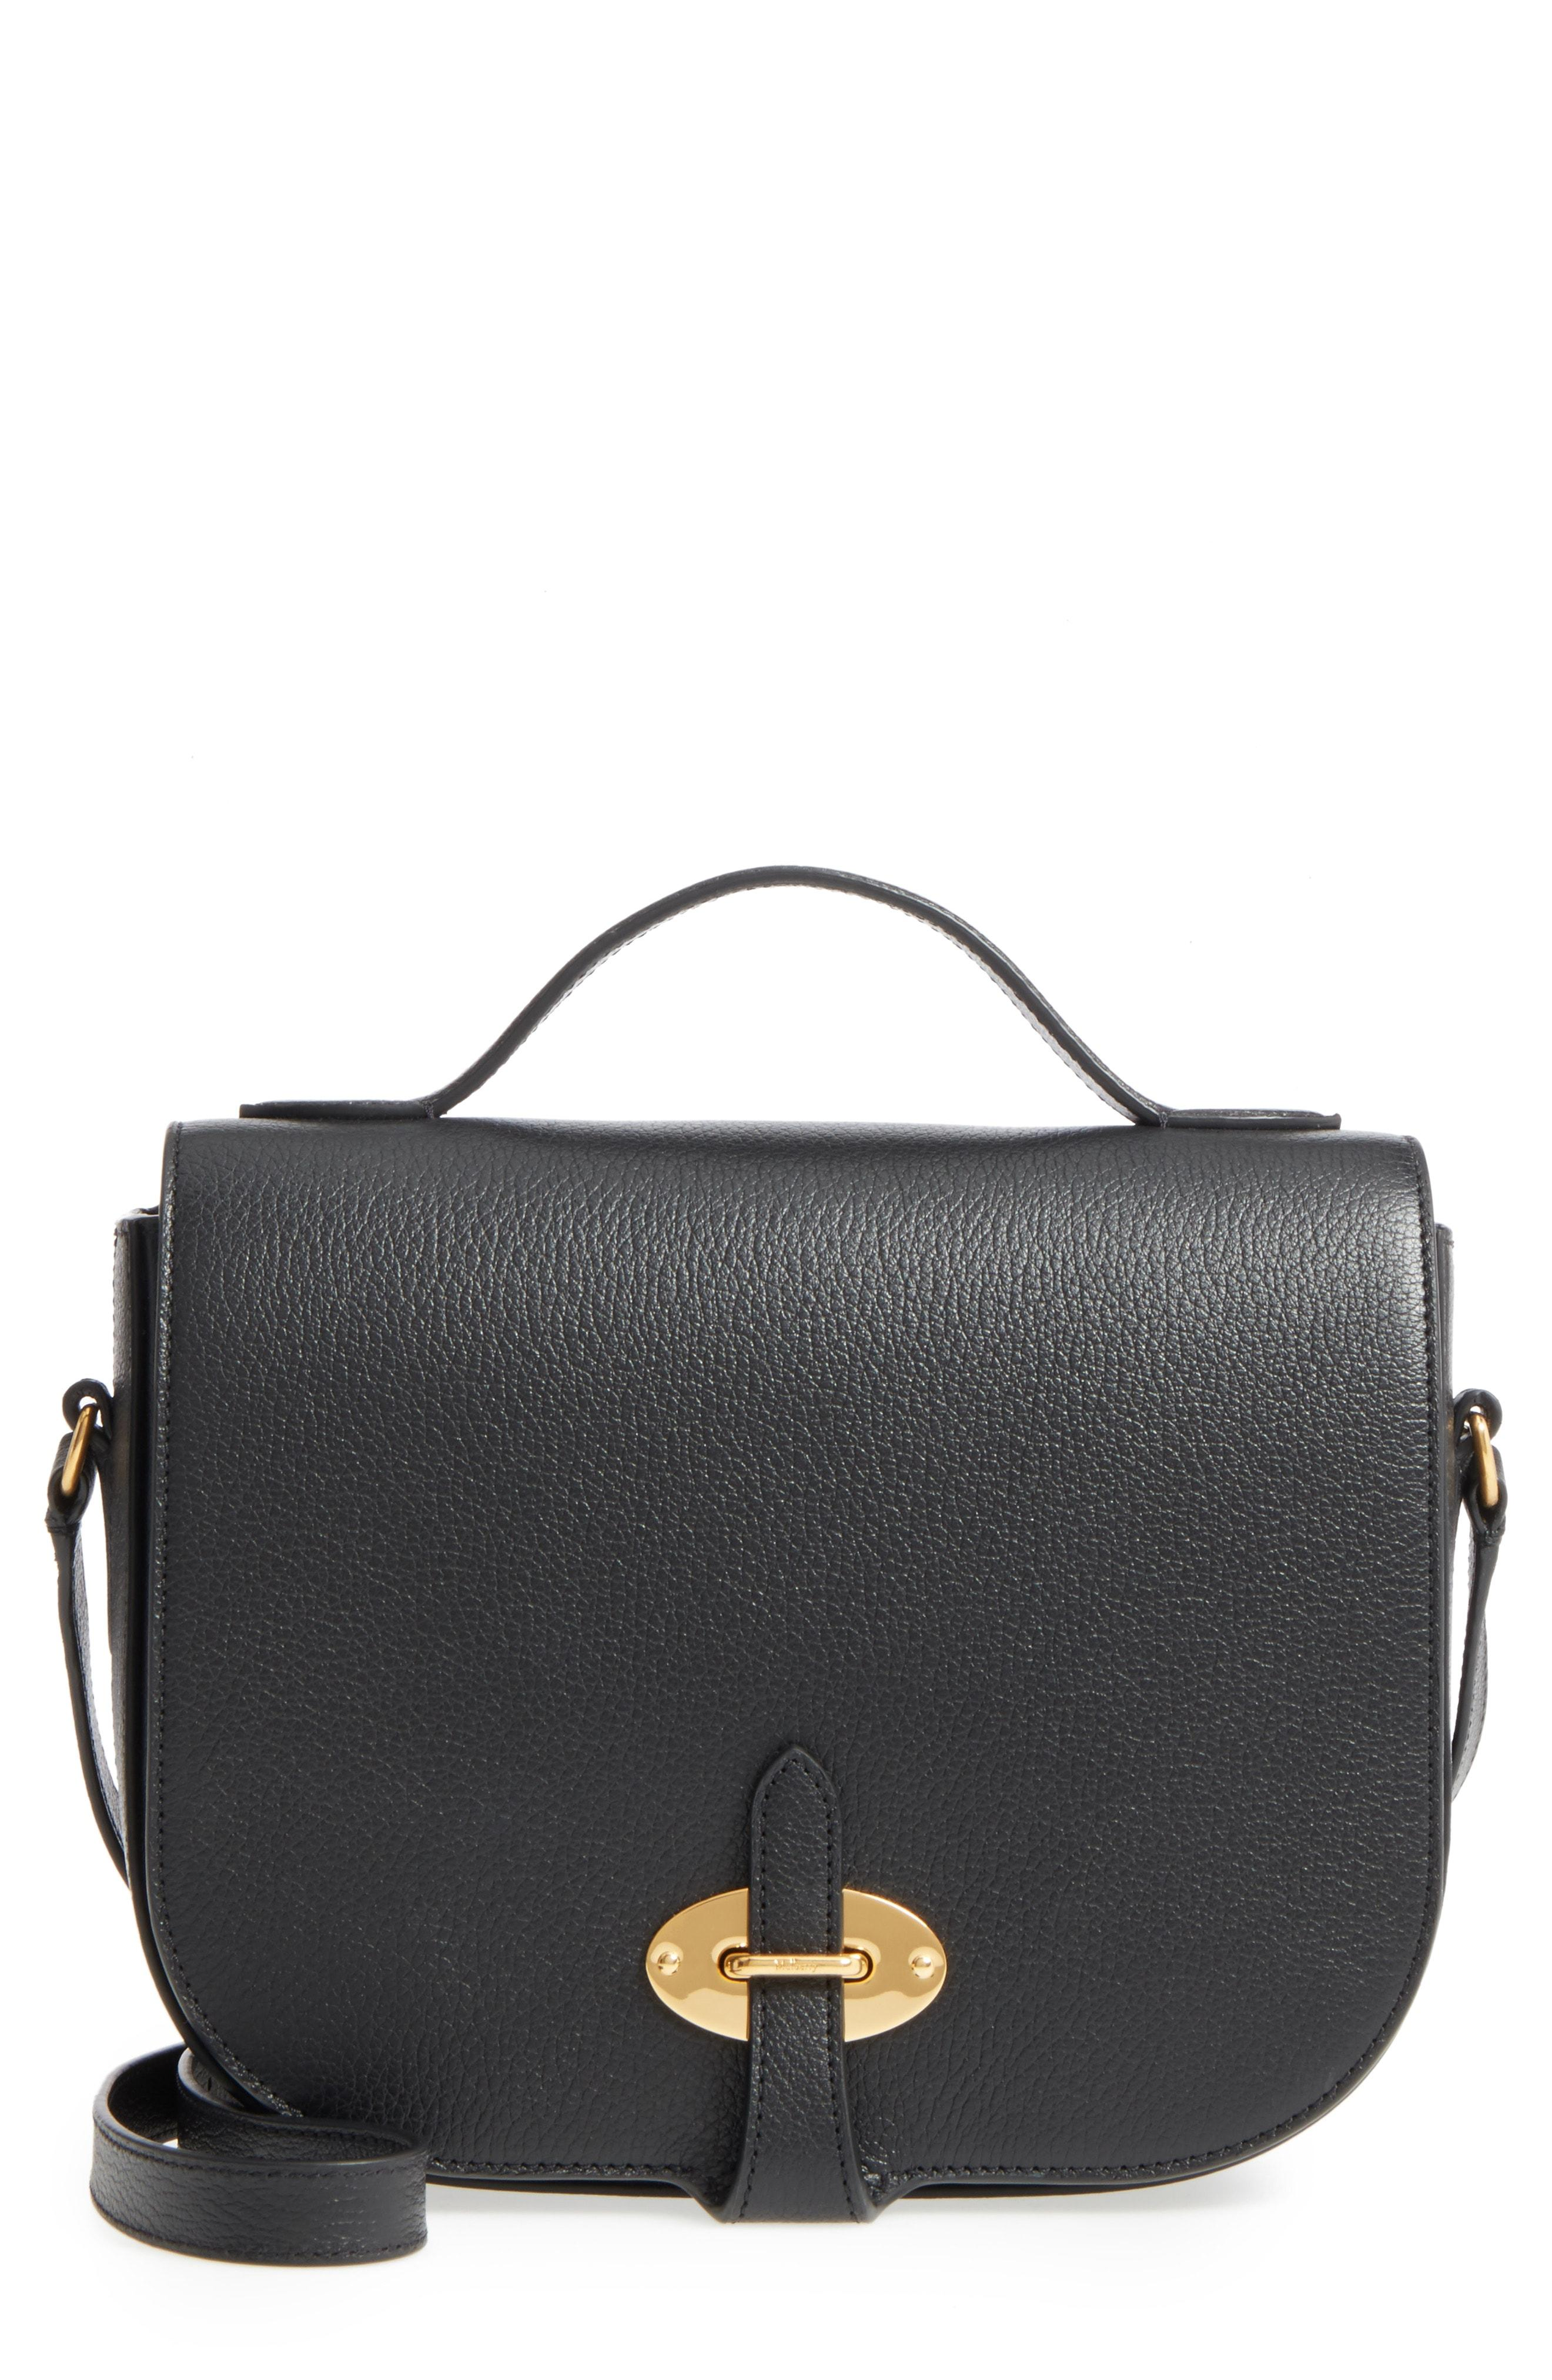 9cefd8a5d3 Lyst - Mulberry Tenby Calfskin Leather Crossbody Bag - in Black